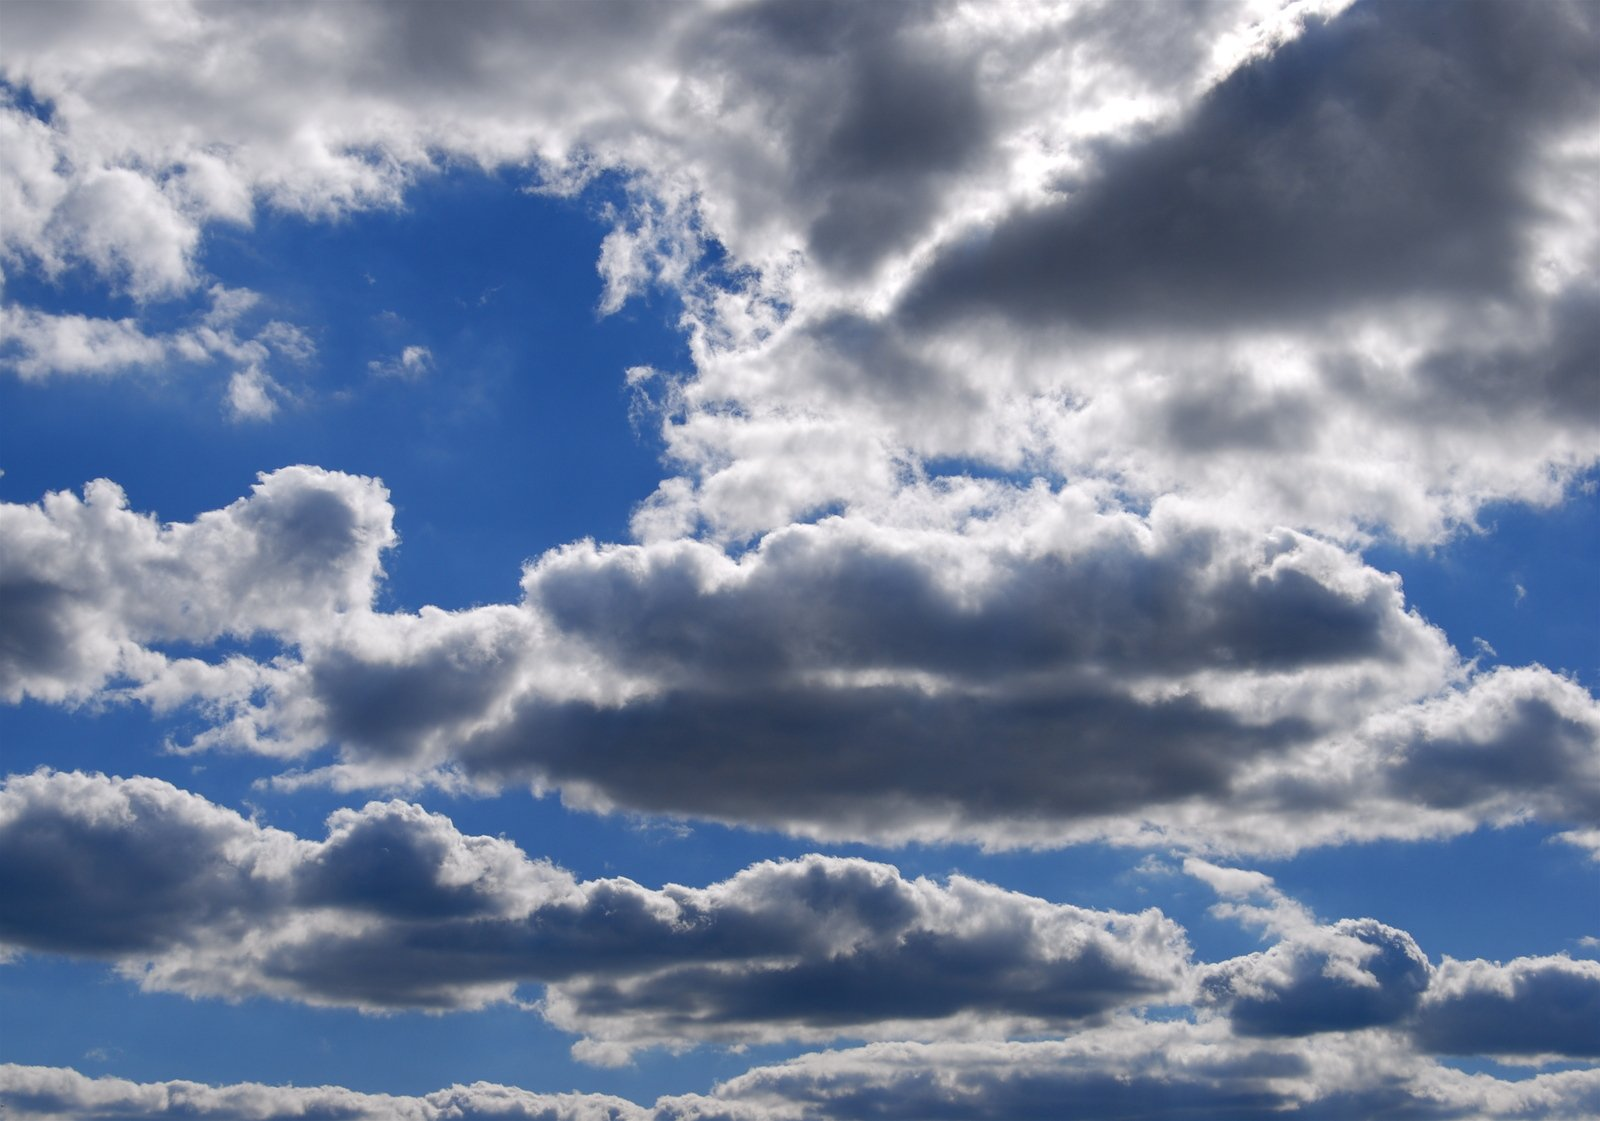 Free Partly cloudy Stock Photo - FreeImages.com